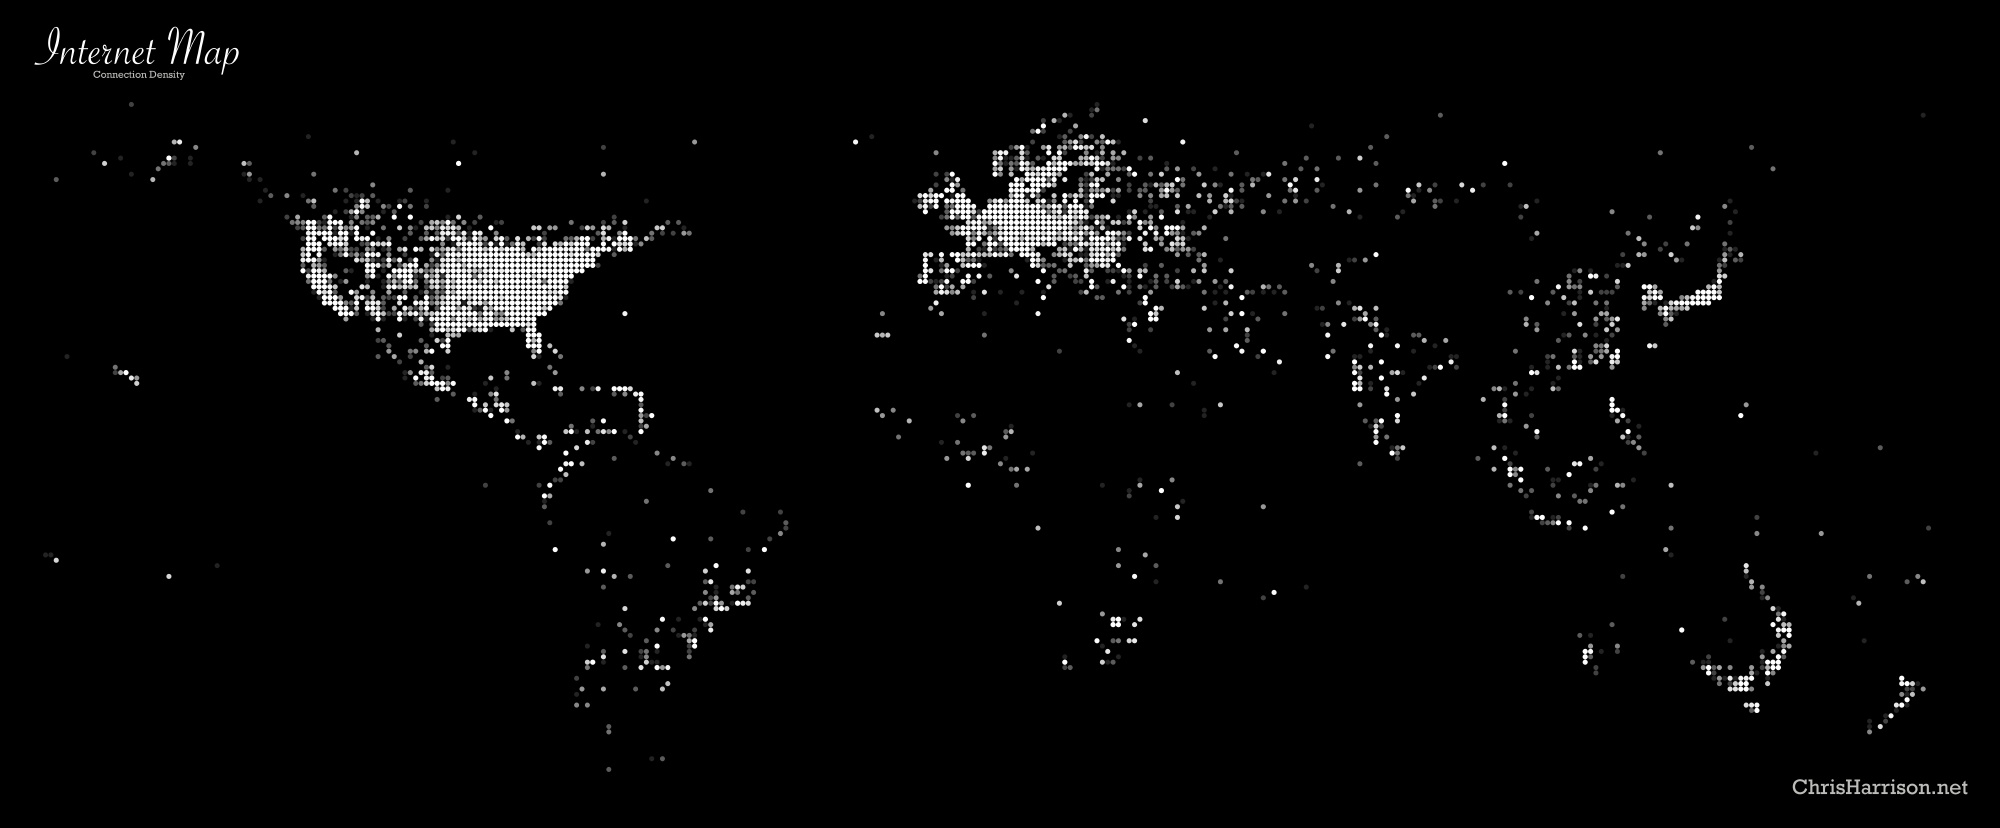 Internet density map